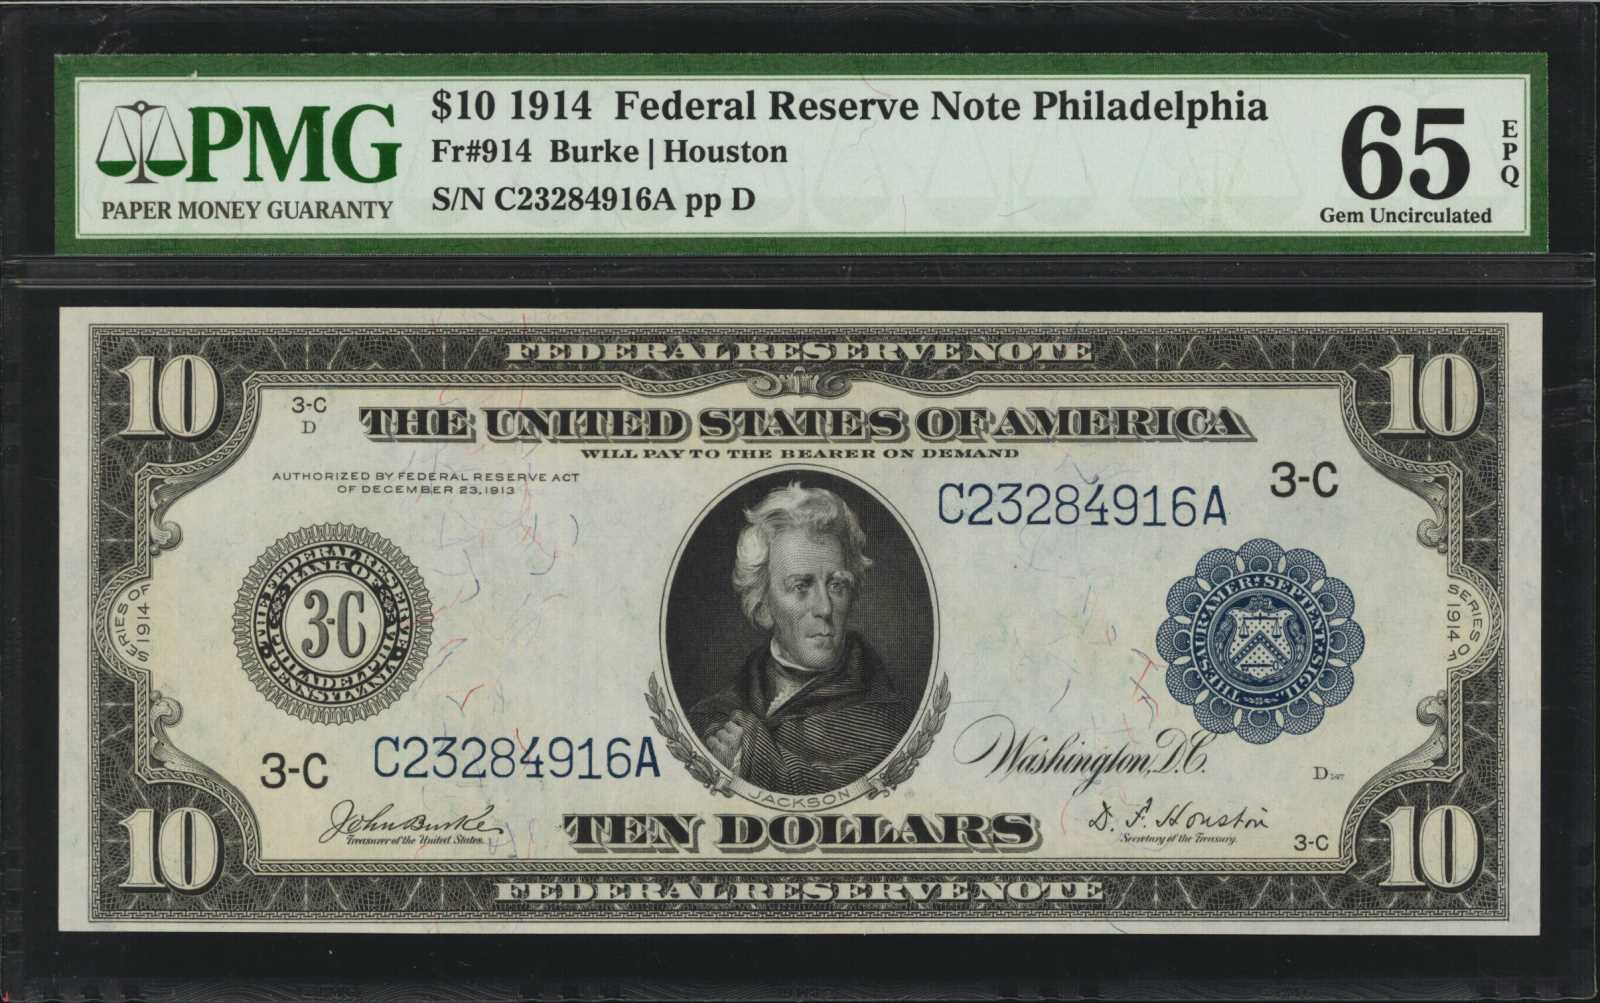 sample image for Fr.914 $10 Philly